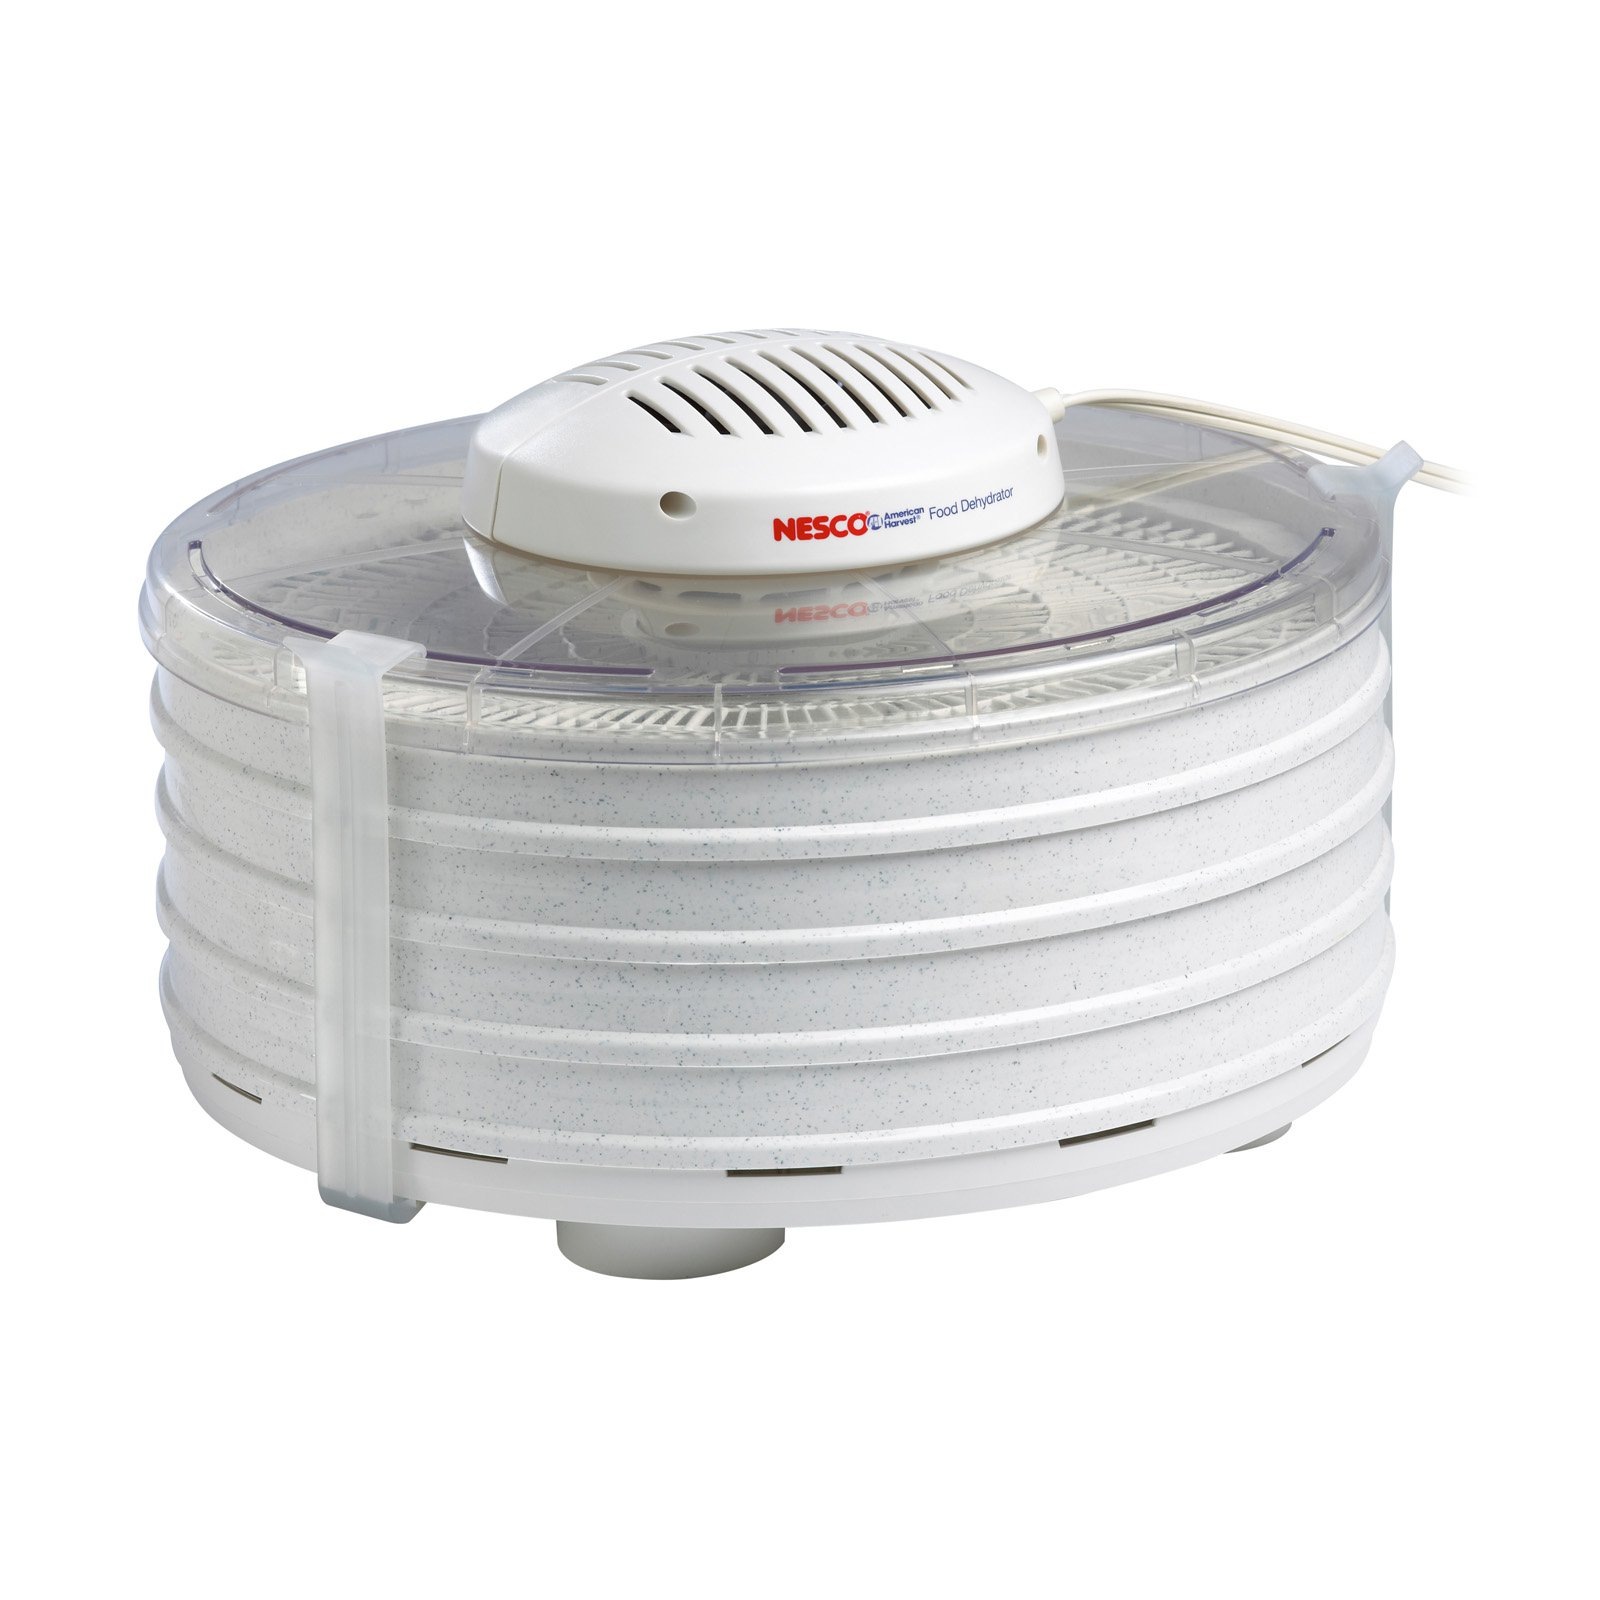 Nesco FD-37 Dehydrator & Jerky Maker by Nesco